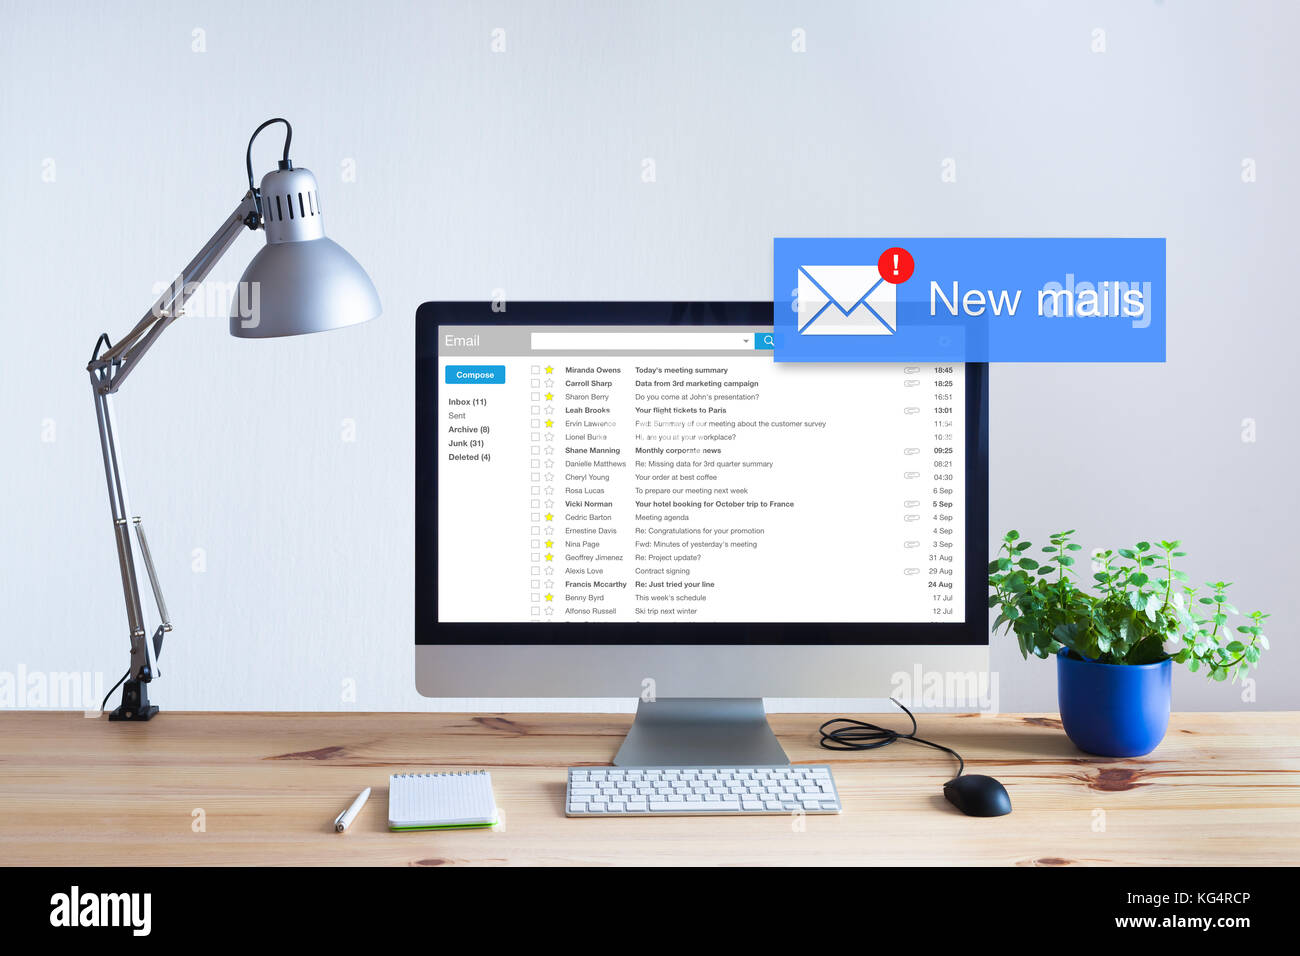 Receiving email in inbox concept with popup notification of new unread mails appearing on computer screen, marketing, - Stock Image